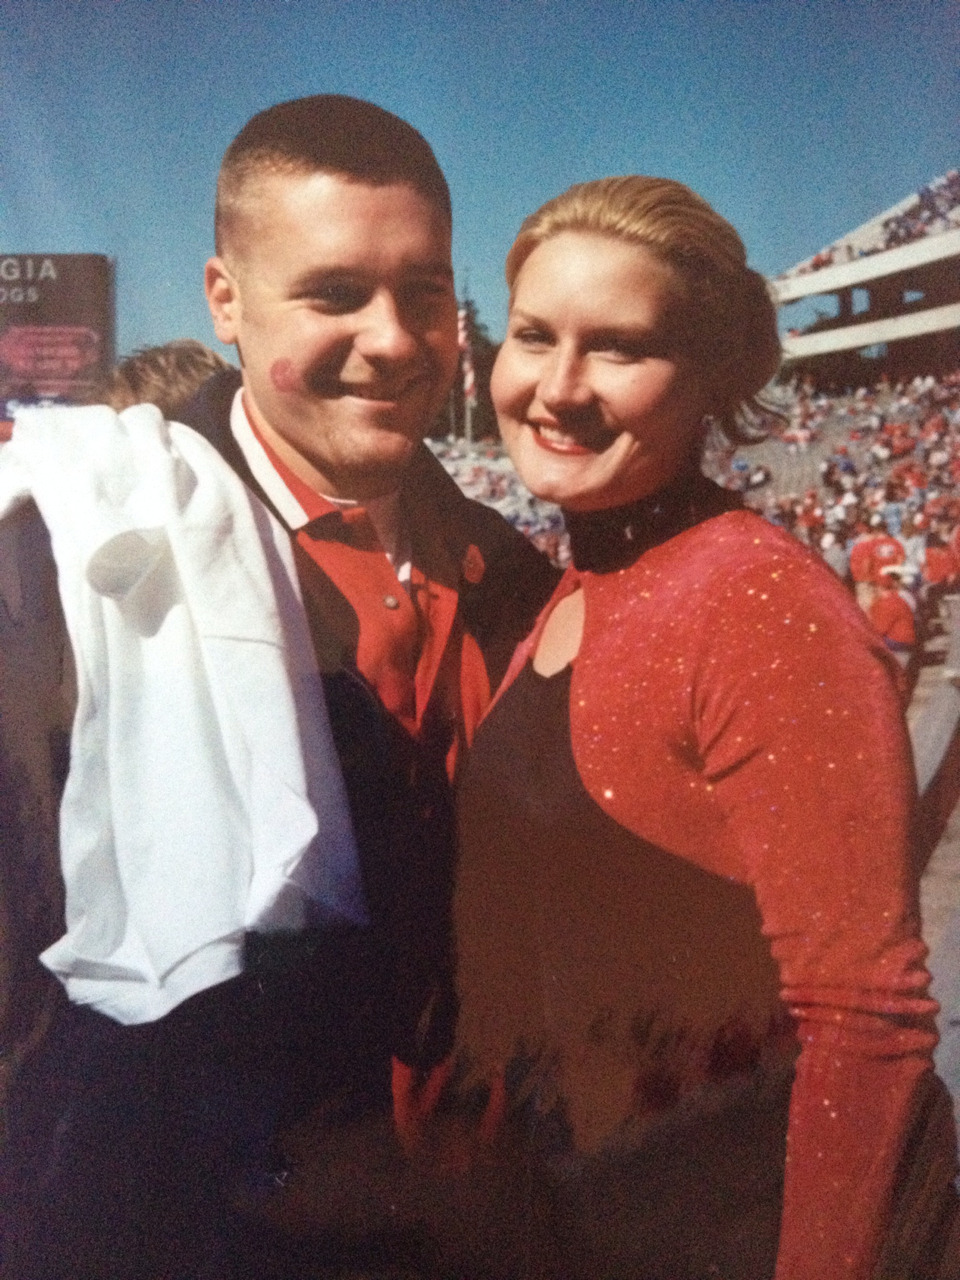 Throwback Thursday: My wife (girlfriend at the the time) and I in Athens for a UGA football game. She was captain of the color guard and I have nothing but found memories of visiting her during football season.